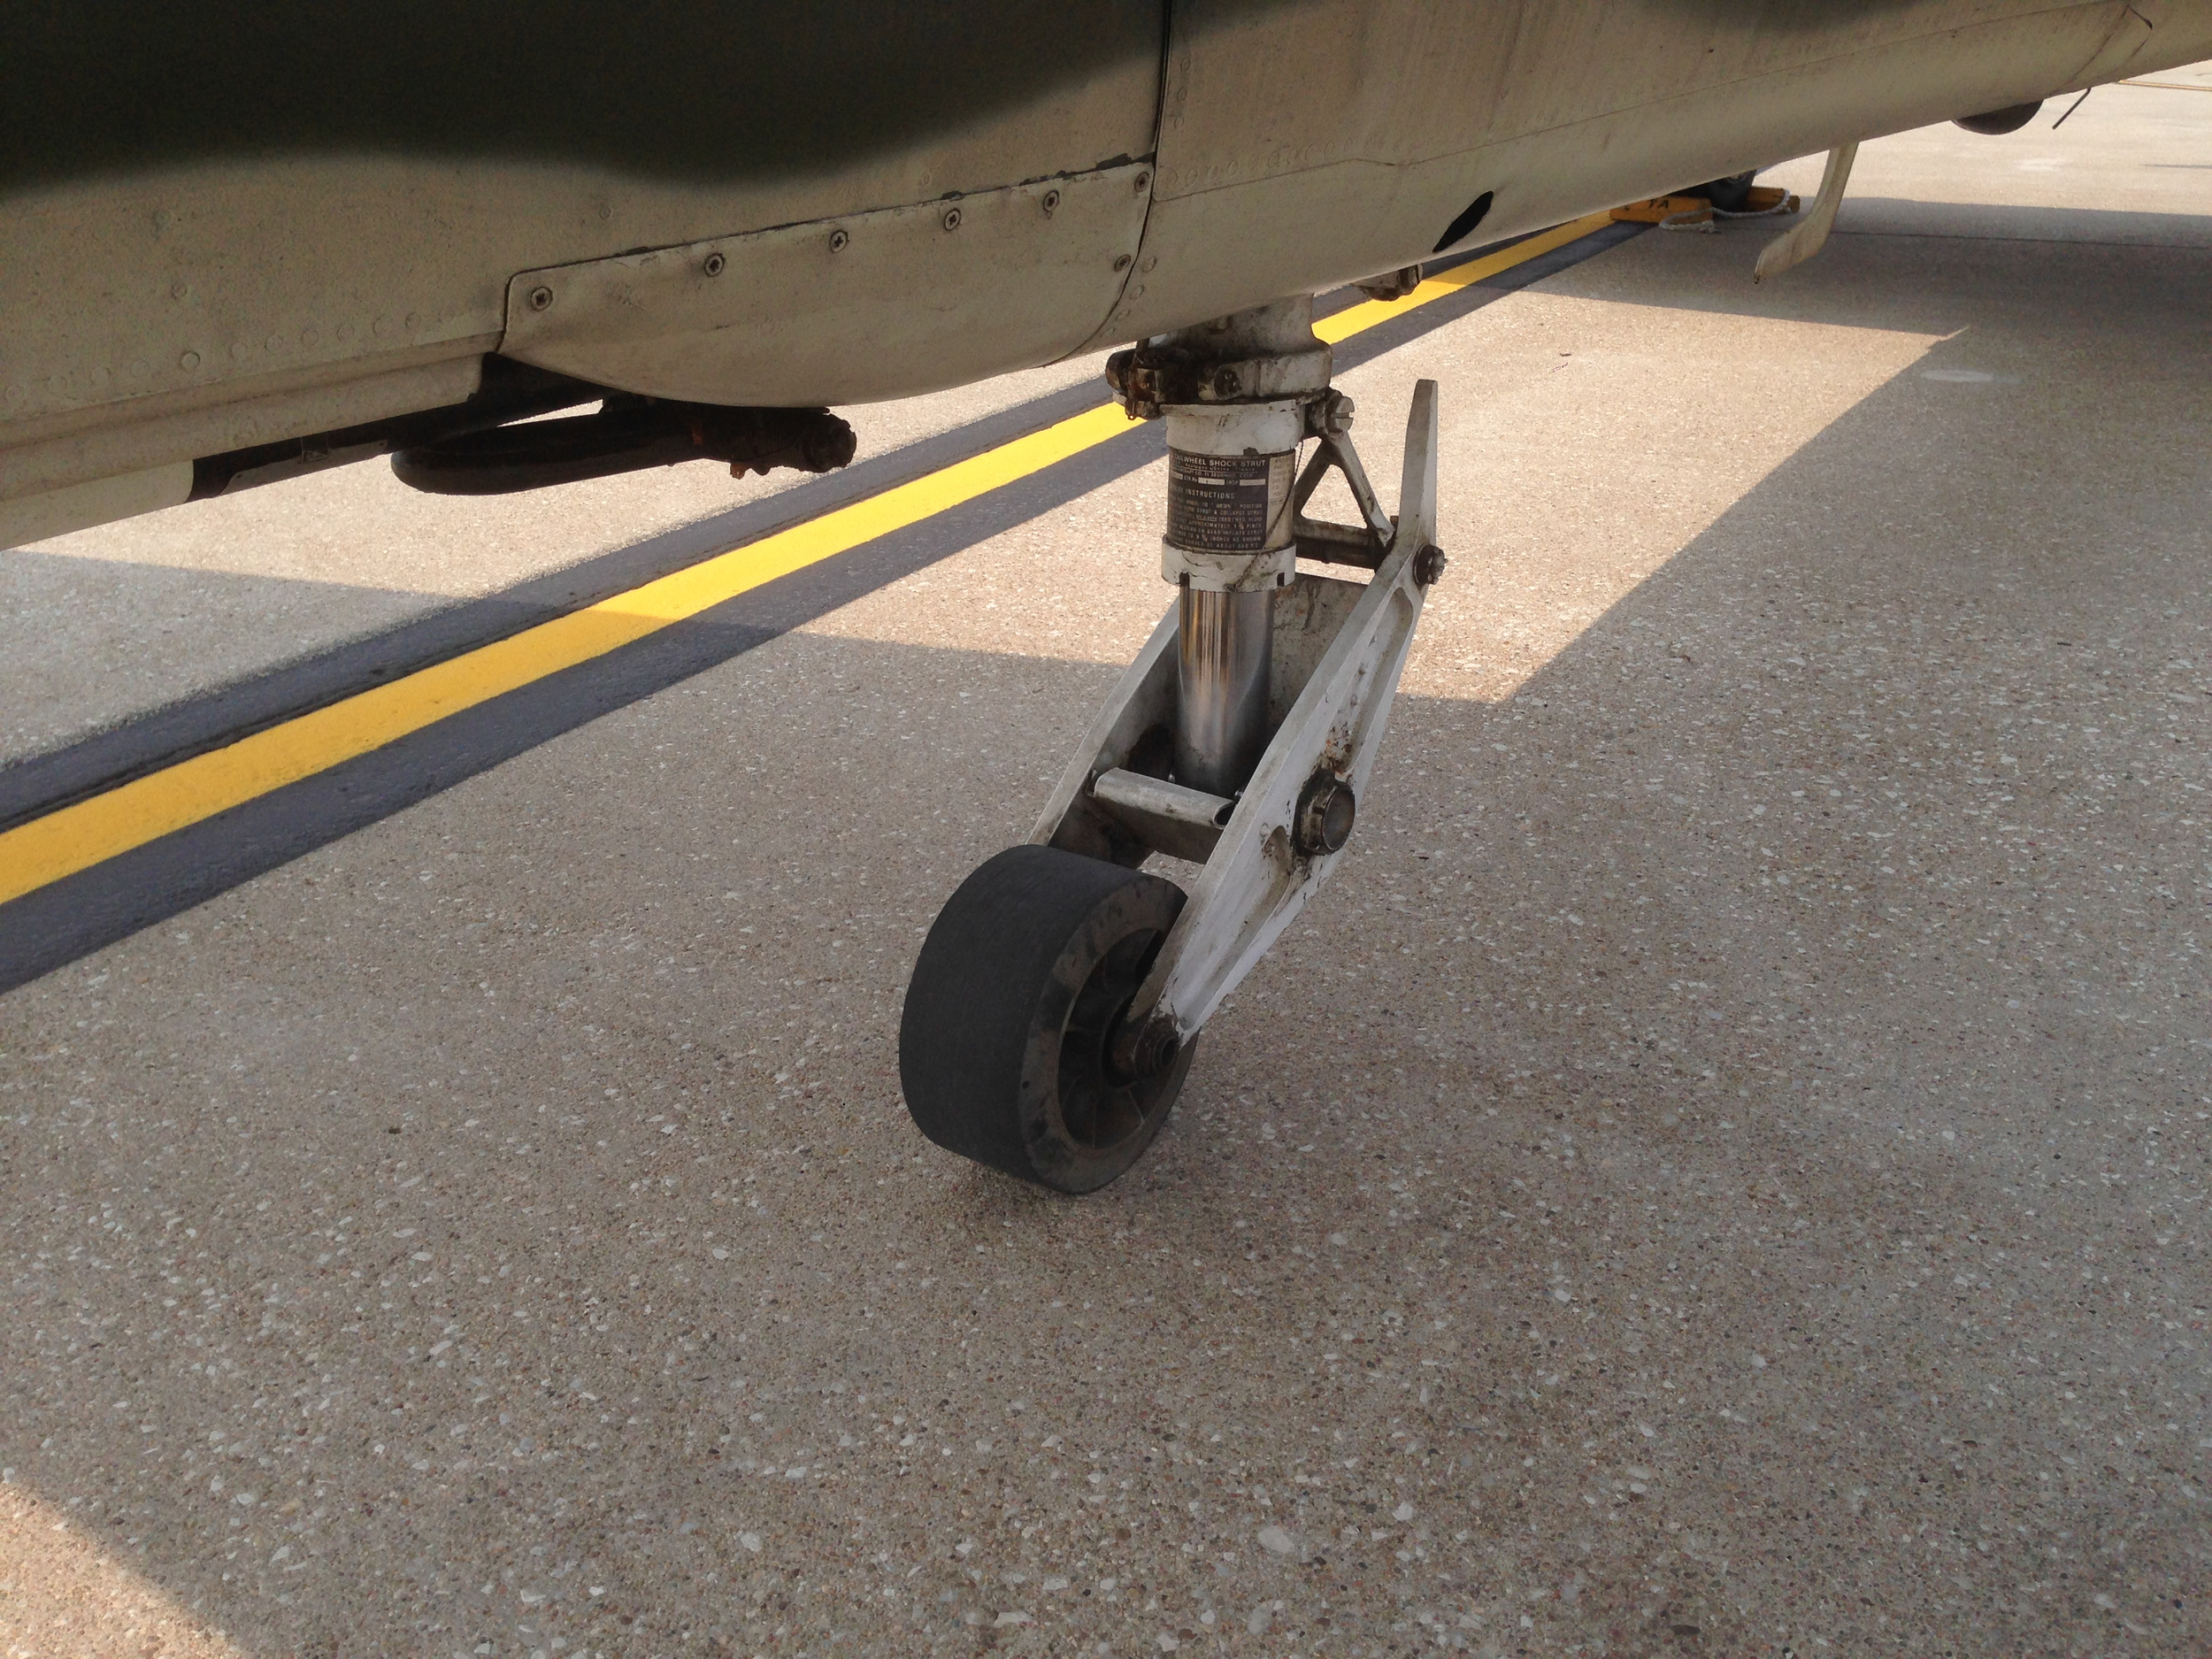 Landing gear used to be a lot simpler...